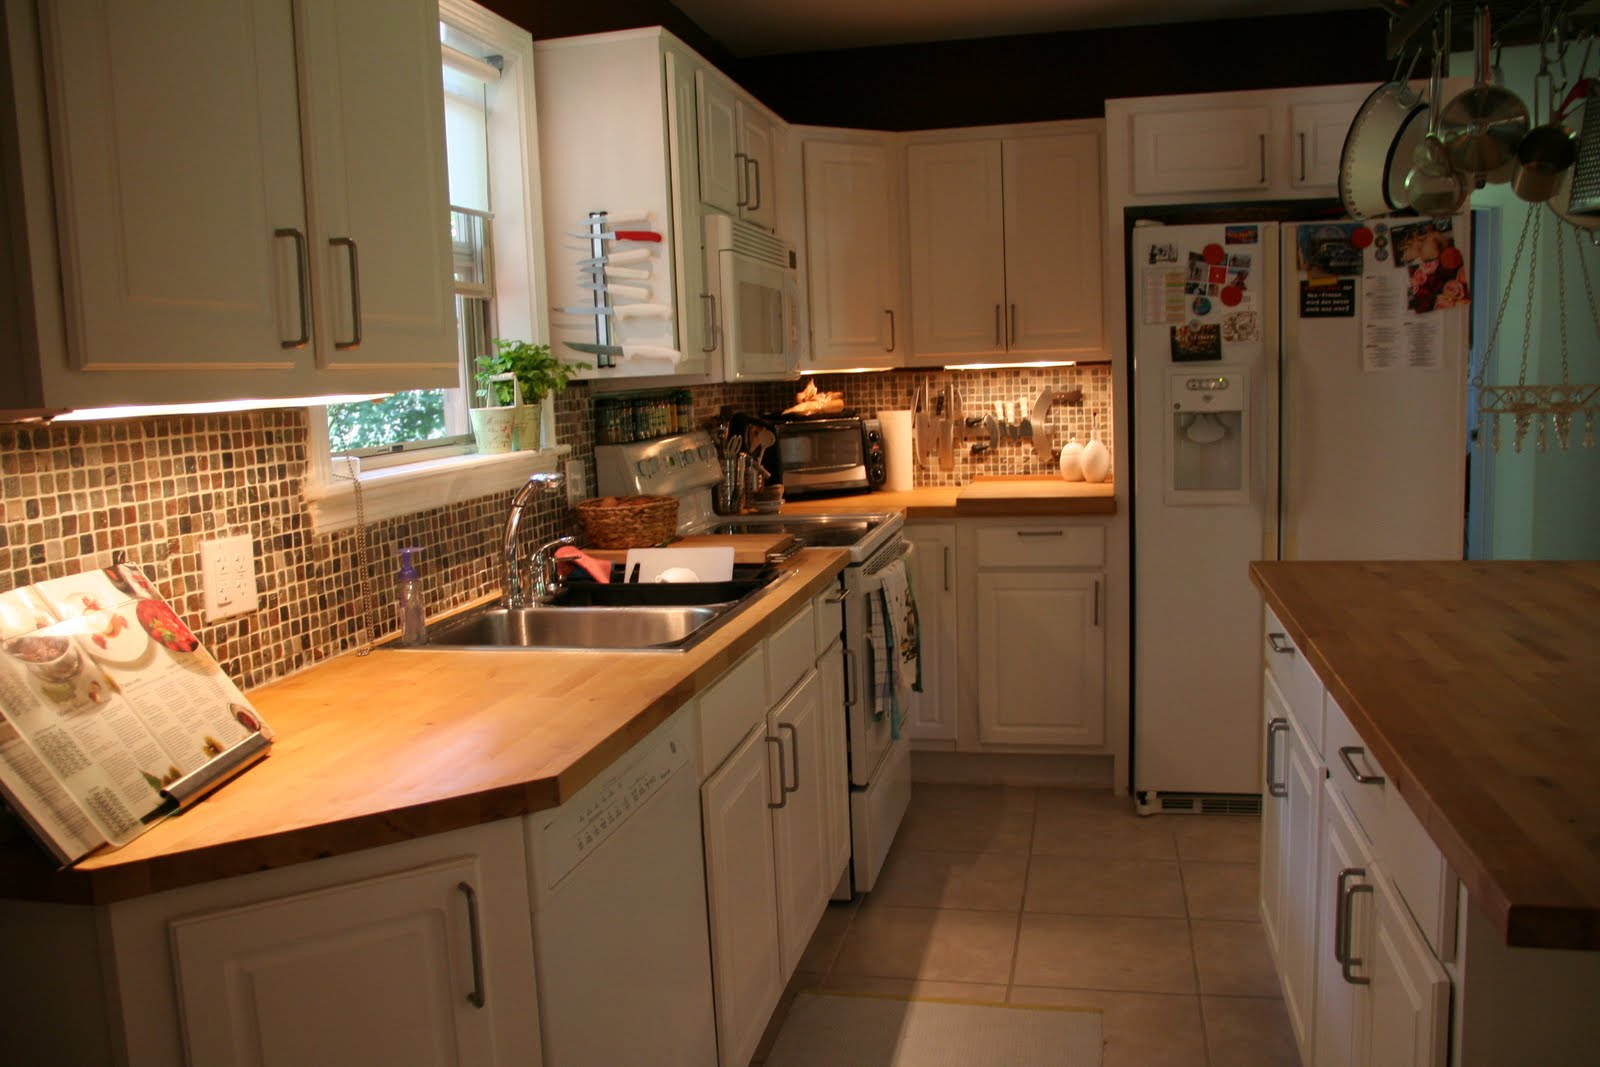 Countertops Louisville Ky House For Sale 414 Wood Rd Lyndon Area Louisville Ky